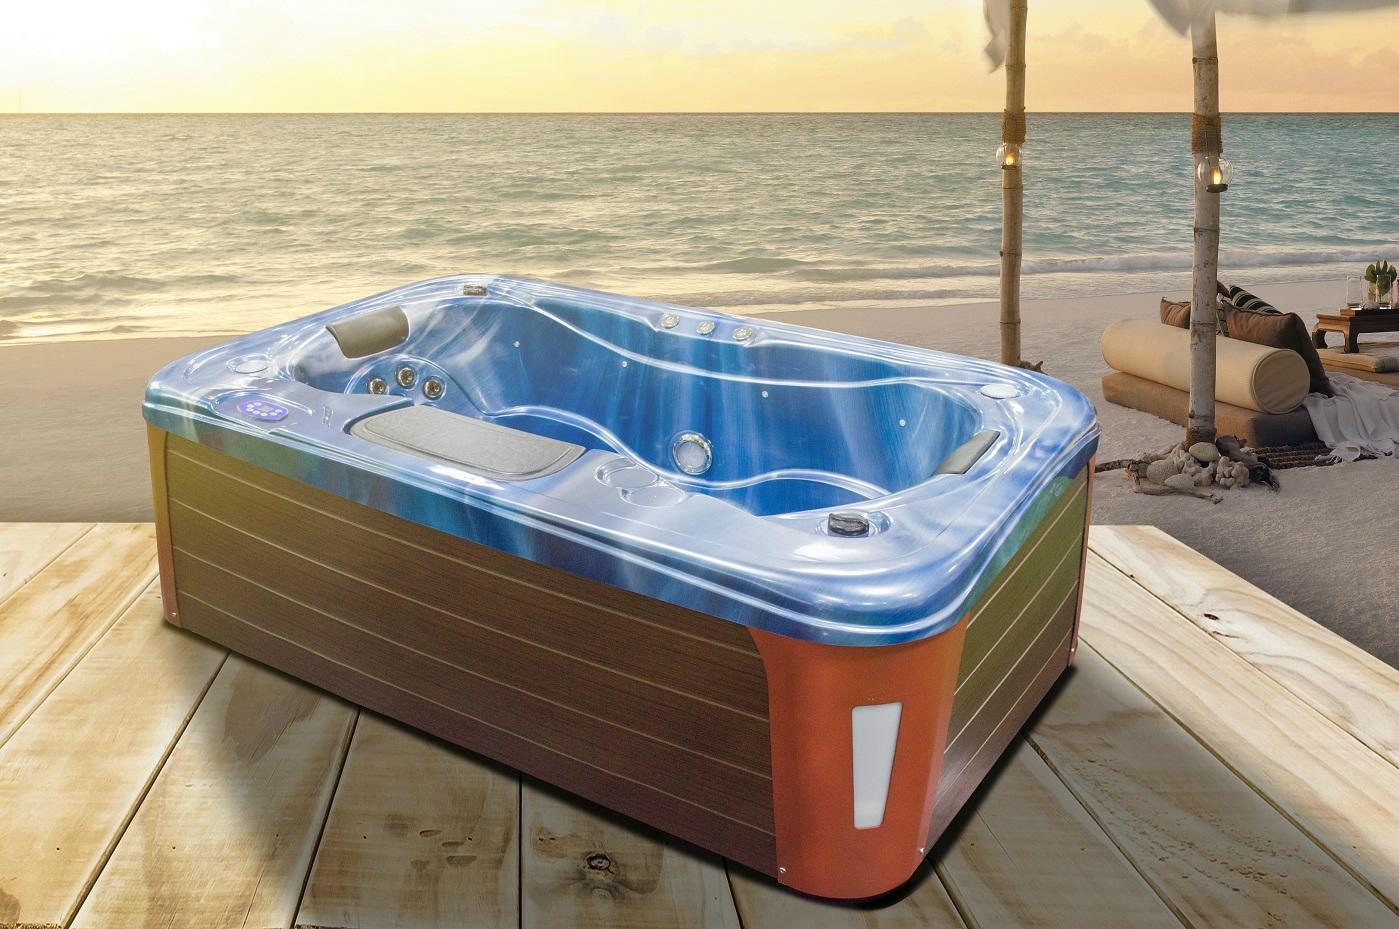 Whirlpool spa hot tub - NE-9005 - Twodee (China Manufacturer ...